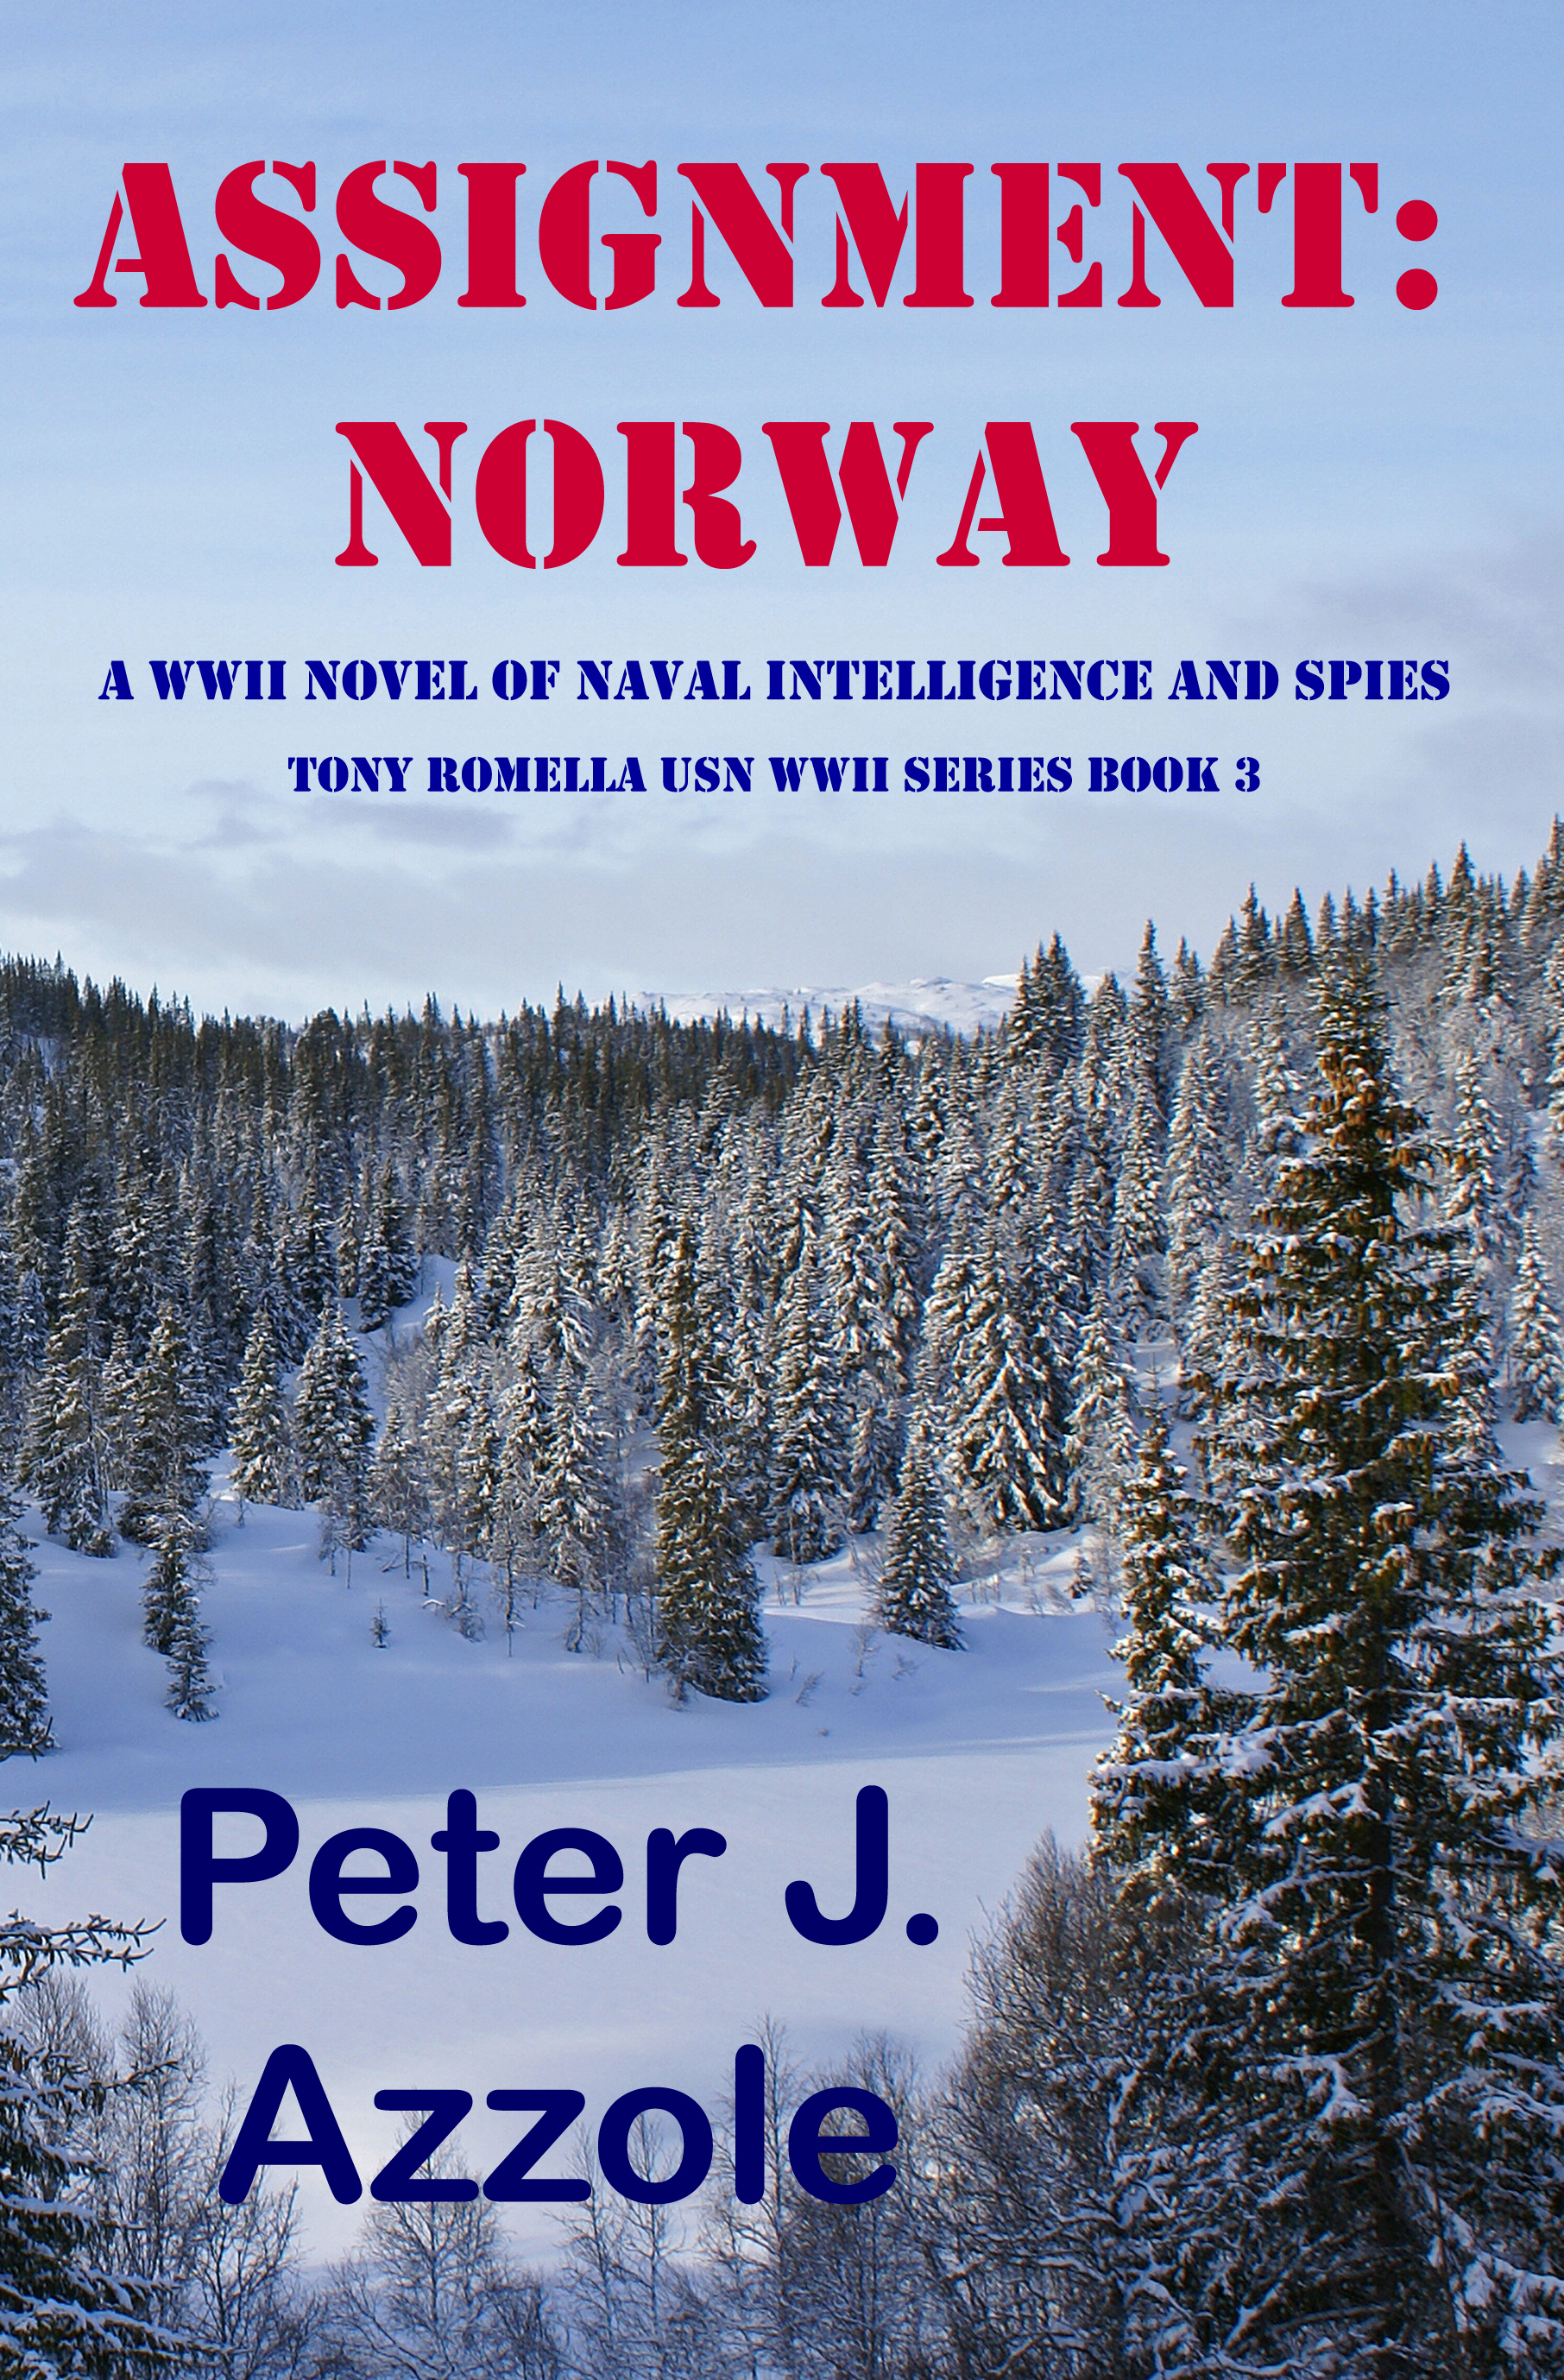 20190226_NORWAY frontcover v3flat